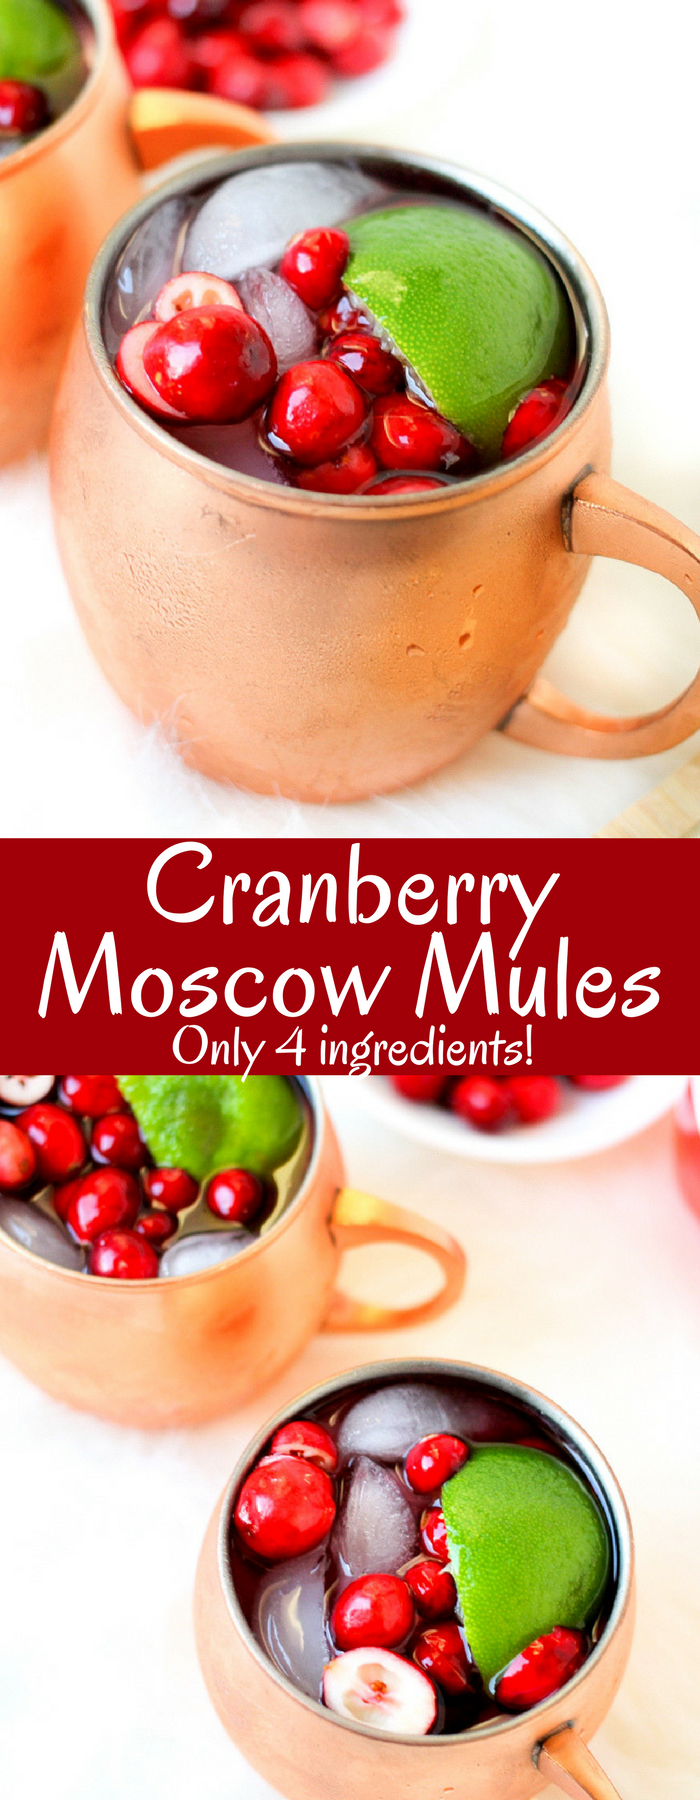 Cranberry Moscow Mules are the perfect festive cocktail! Only FOUR ingredients in this easy delicious holiday drink!